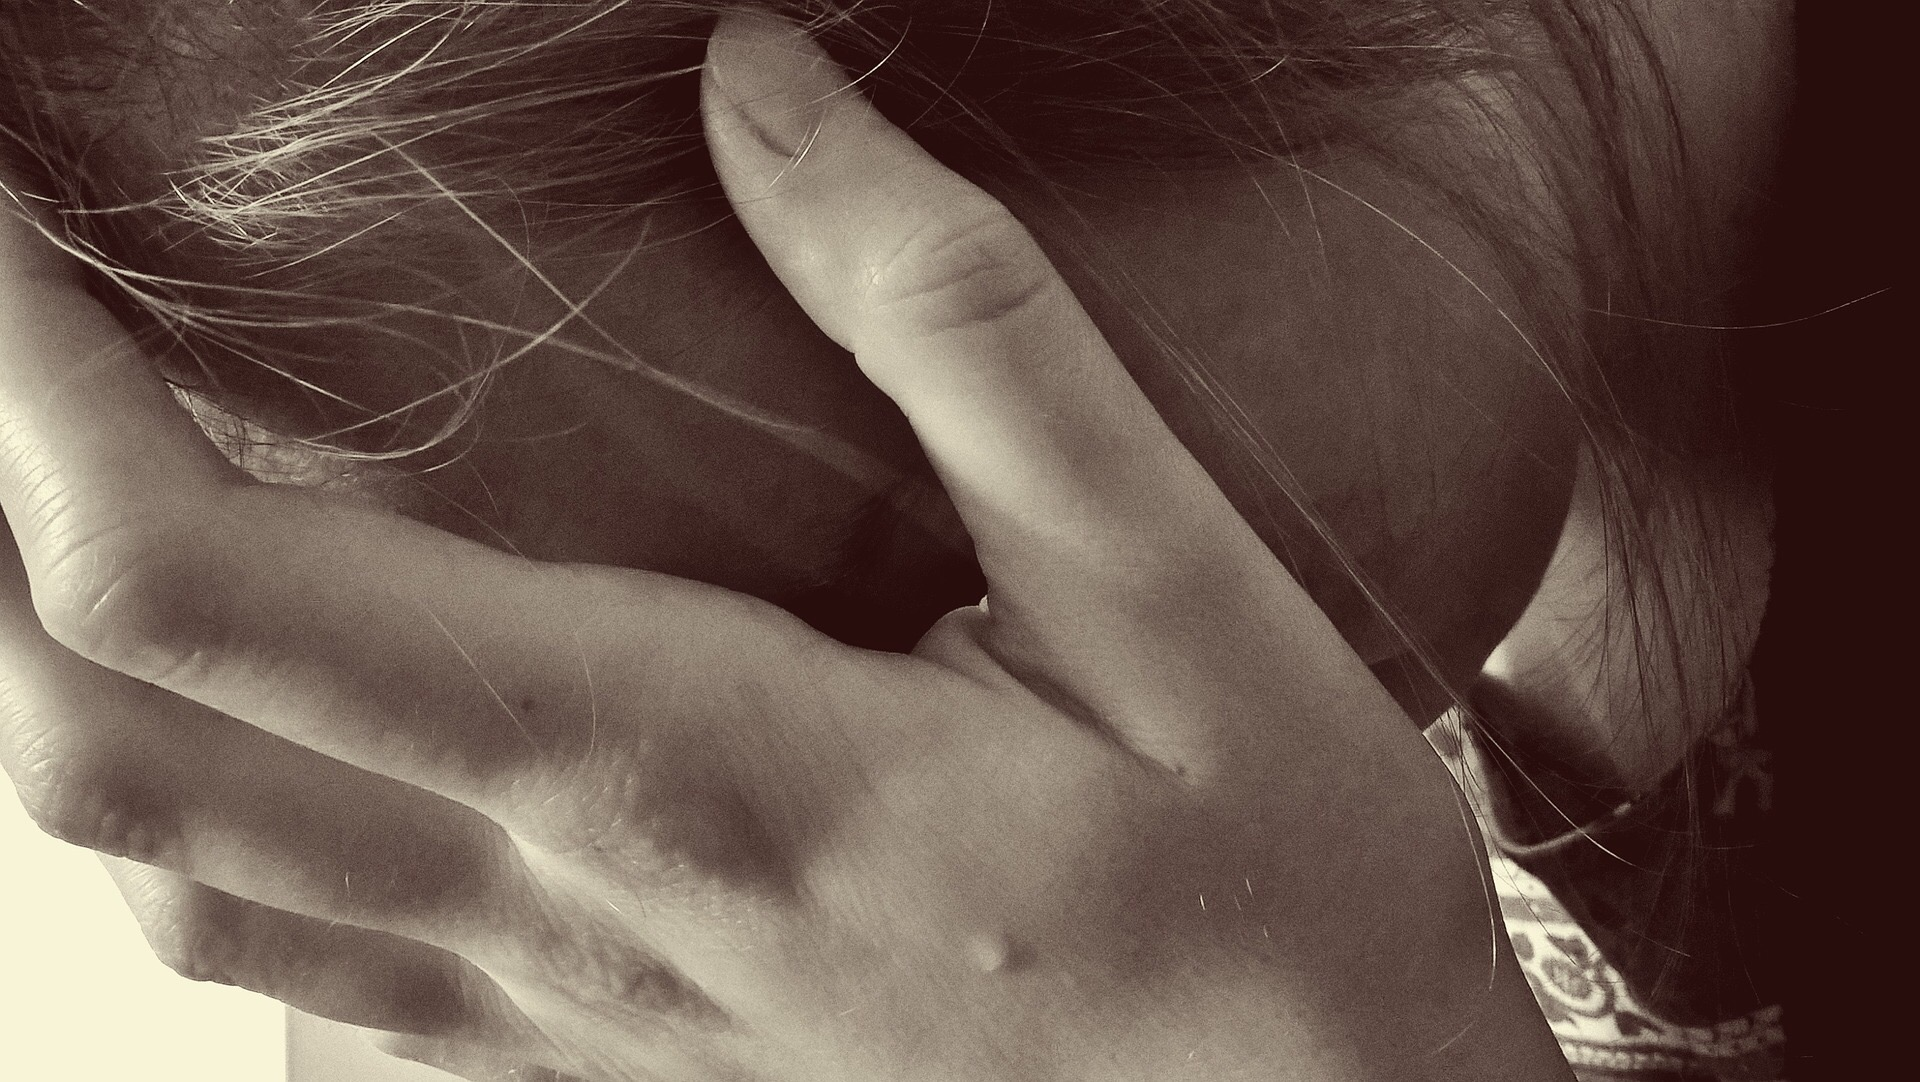 53% of women aged 18-23 report being bullied